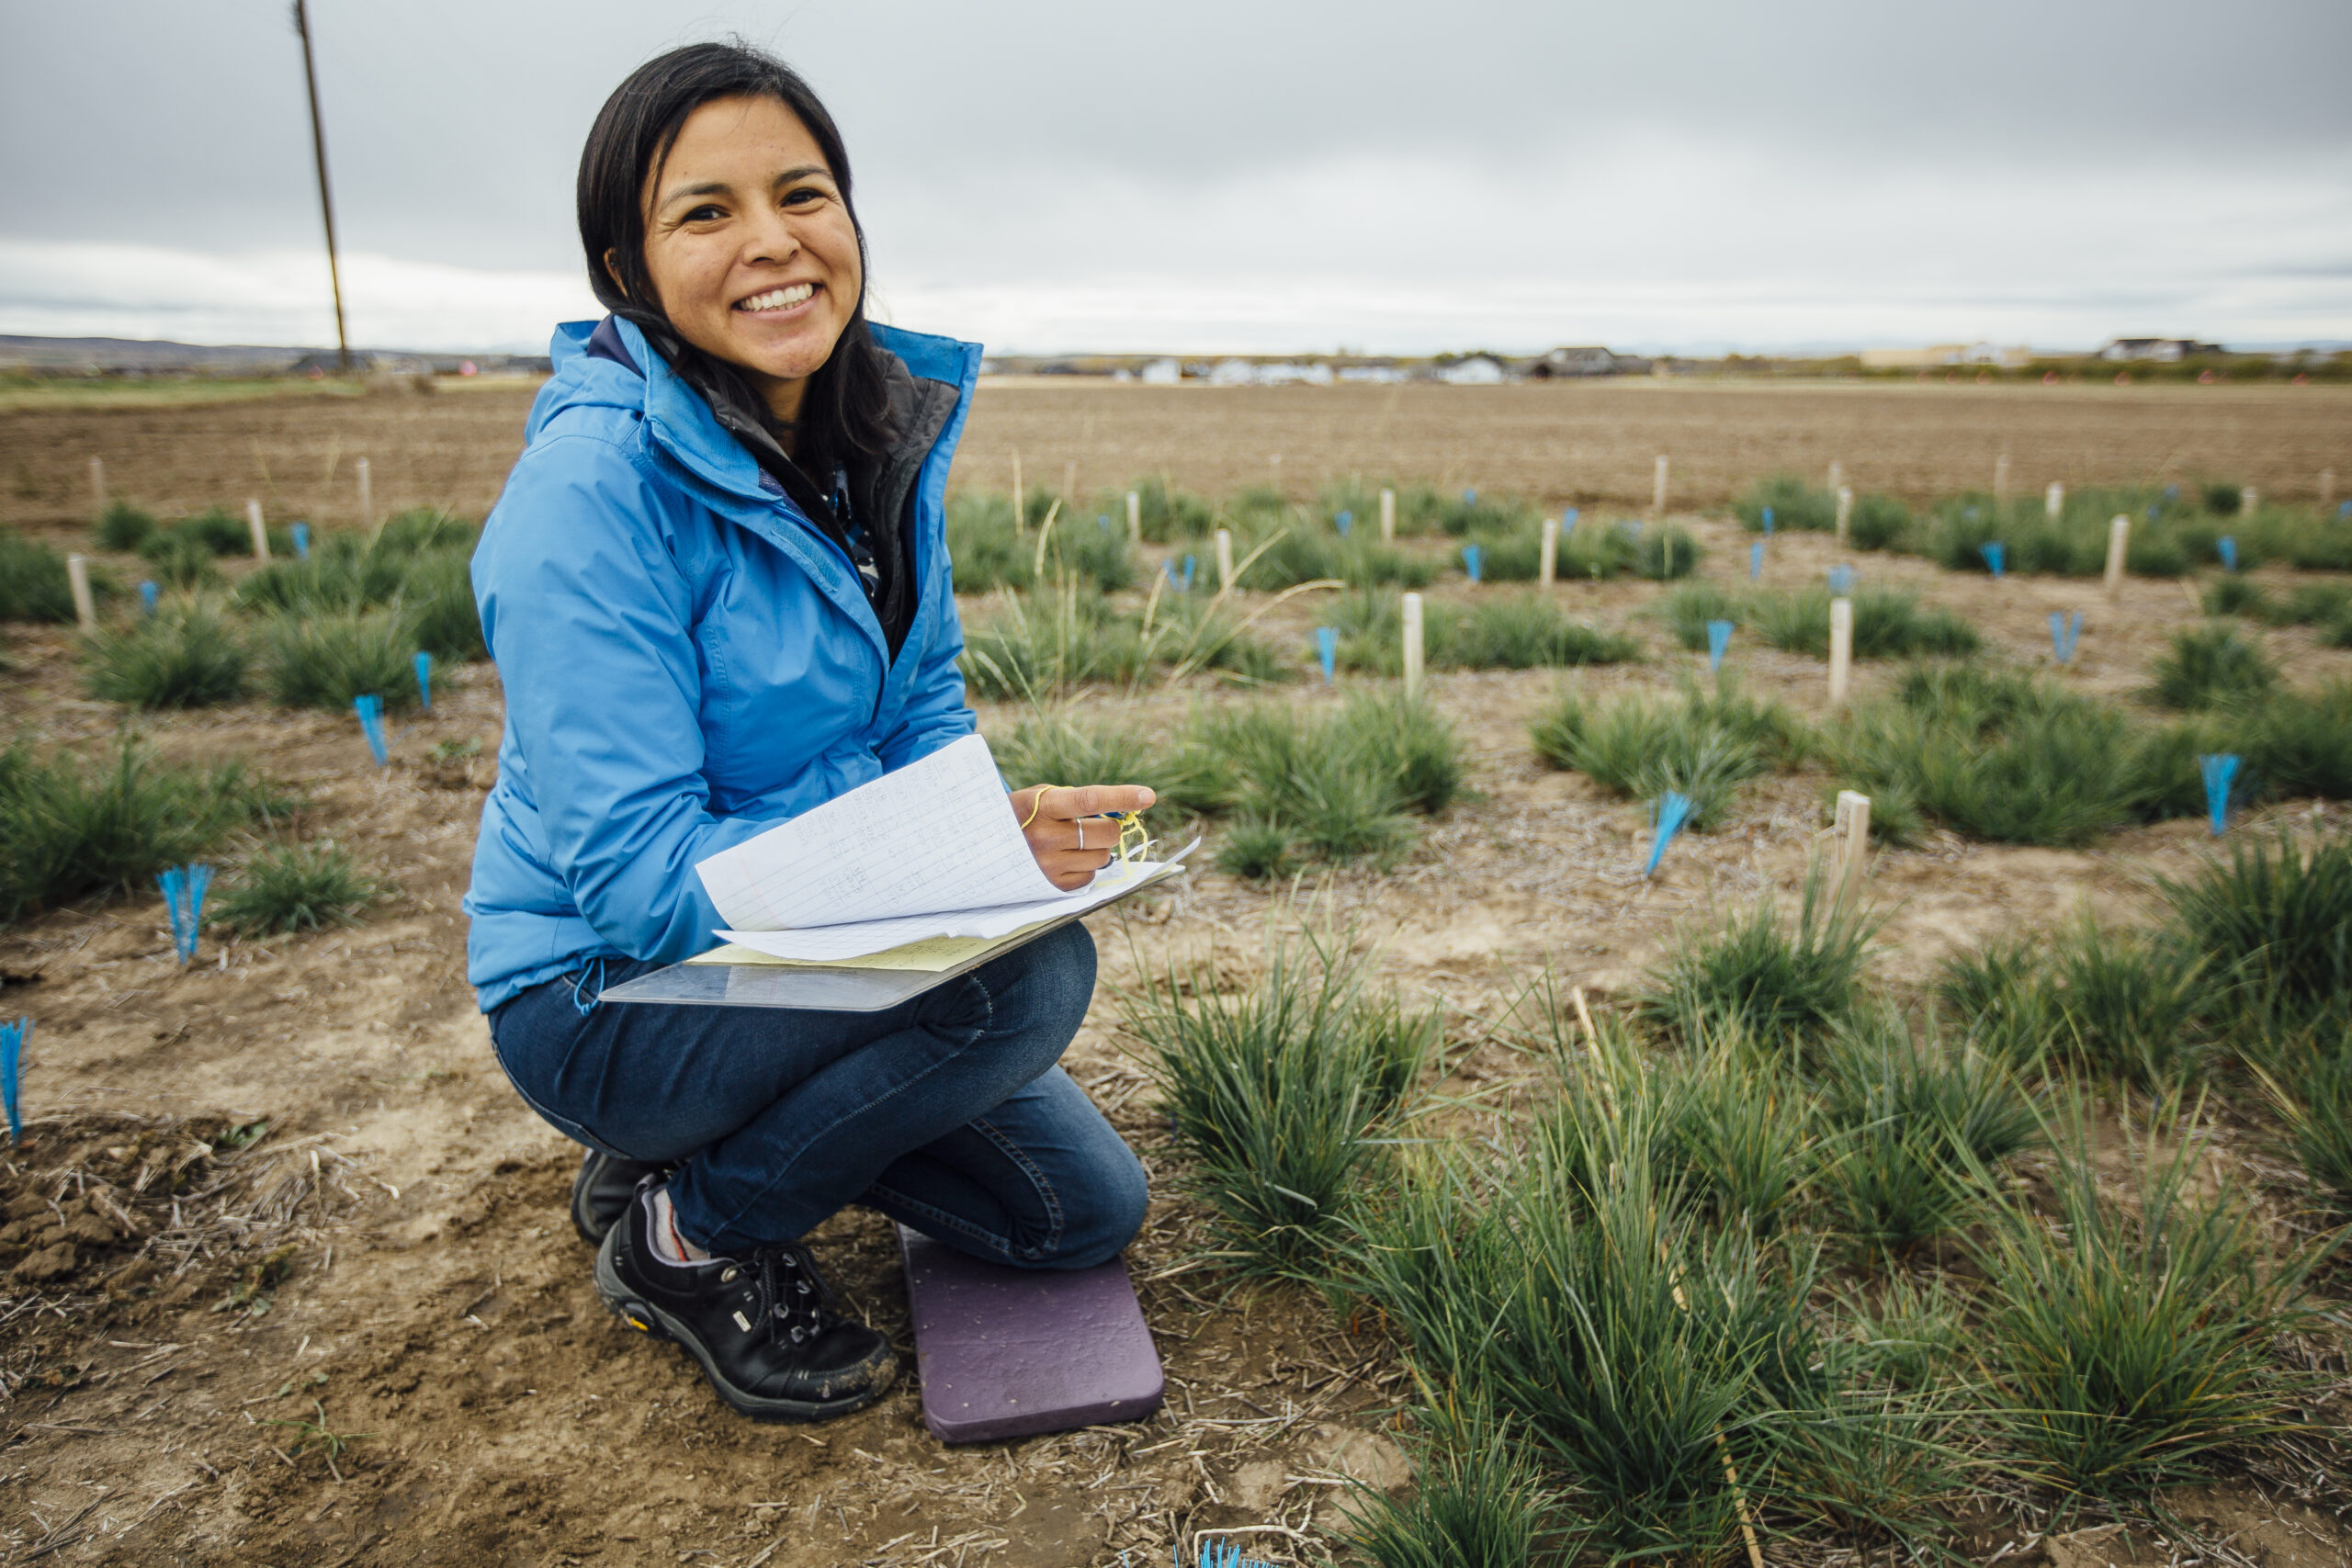 Audrey Harvey, a Montana State University graduate student in the Department of Land Resources and Environmental Science, makes observations on a research plot of bluebunch wheatgrass on Friday, Oct. 7, 2016, at the MSU Post Agronomy Farm in Bozeman, Mont. MSU Photo by Adrian Sanchez-Gonzalez